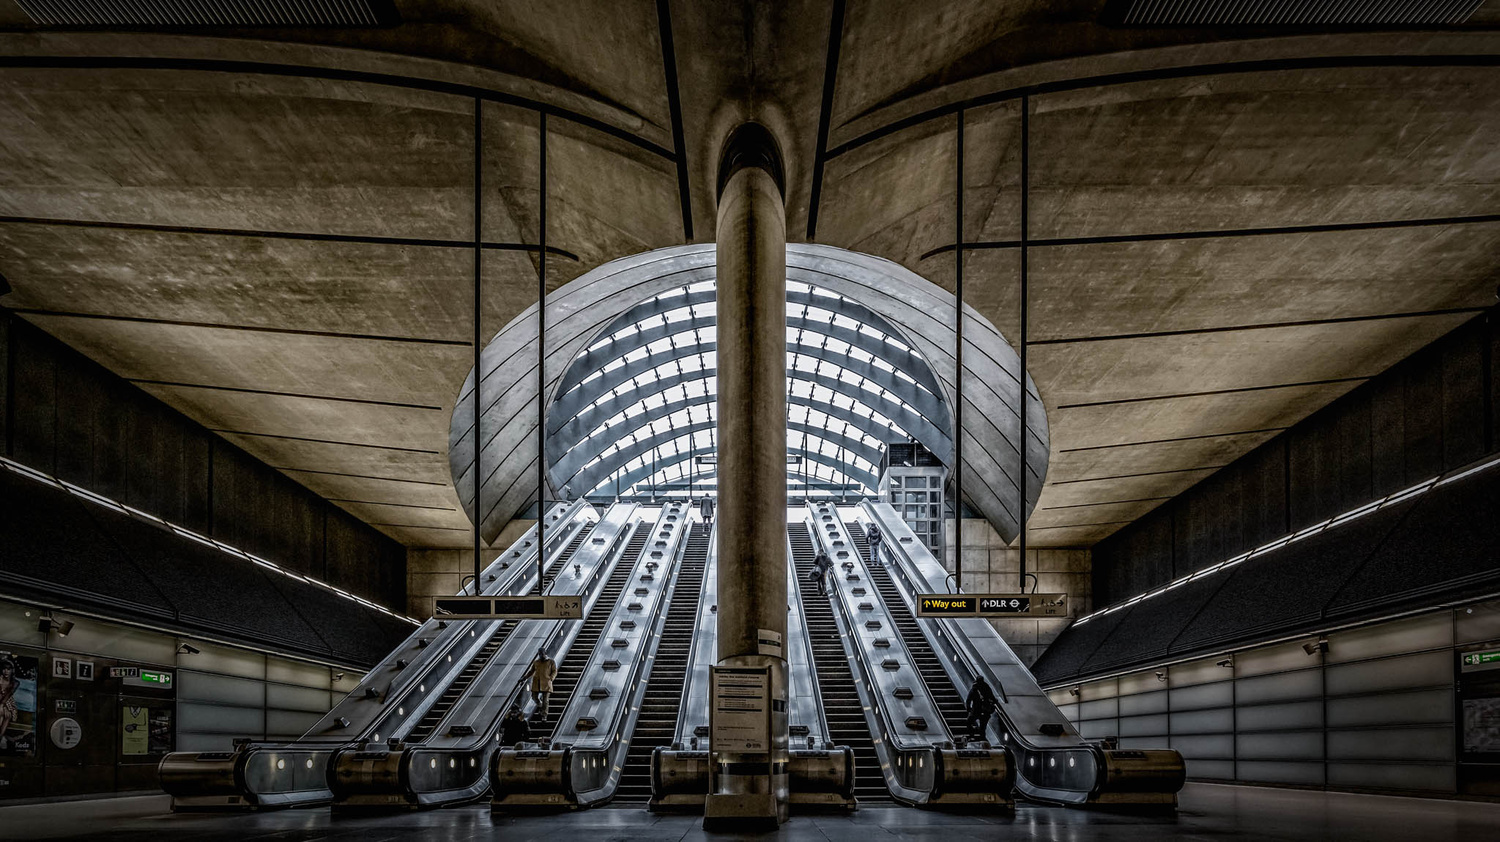 Canary Wharf by Lee Pelling